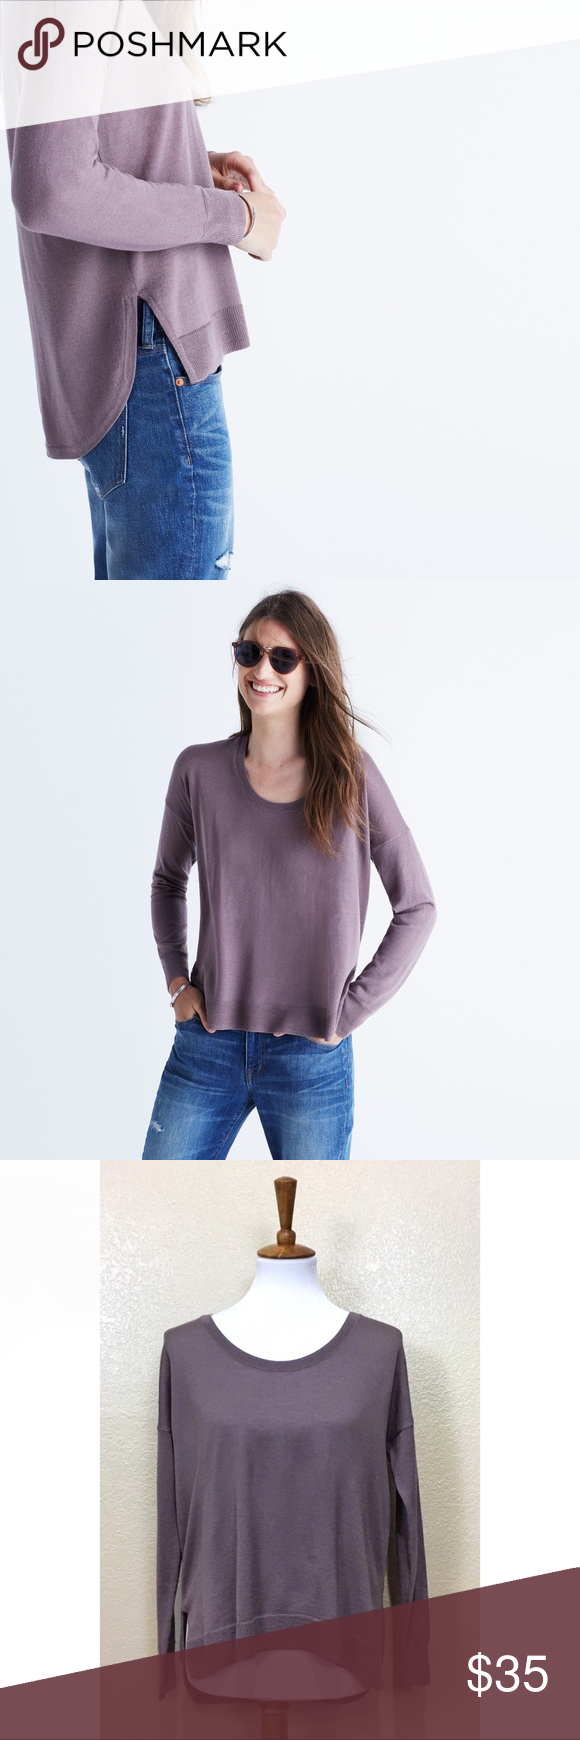 ace3fc882bd Madewell Northlight Knit Pullover Style 5570 Northlight Pullover ...